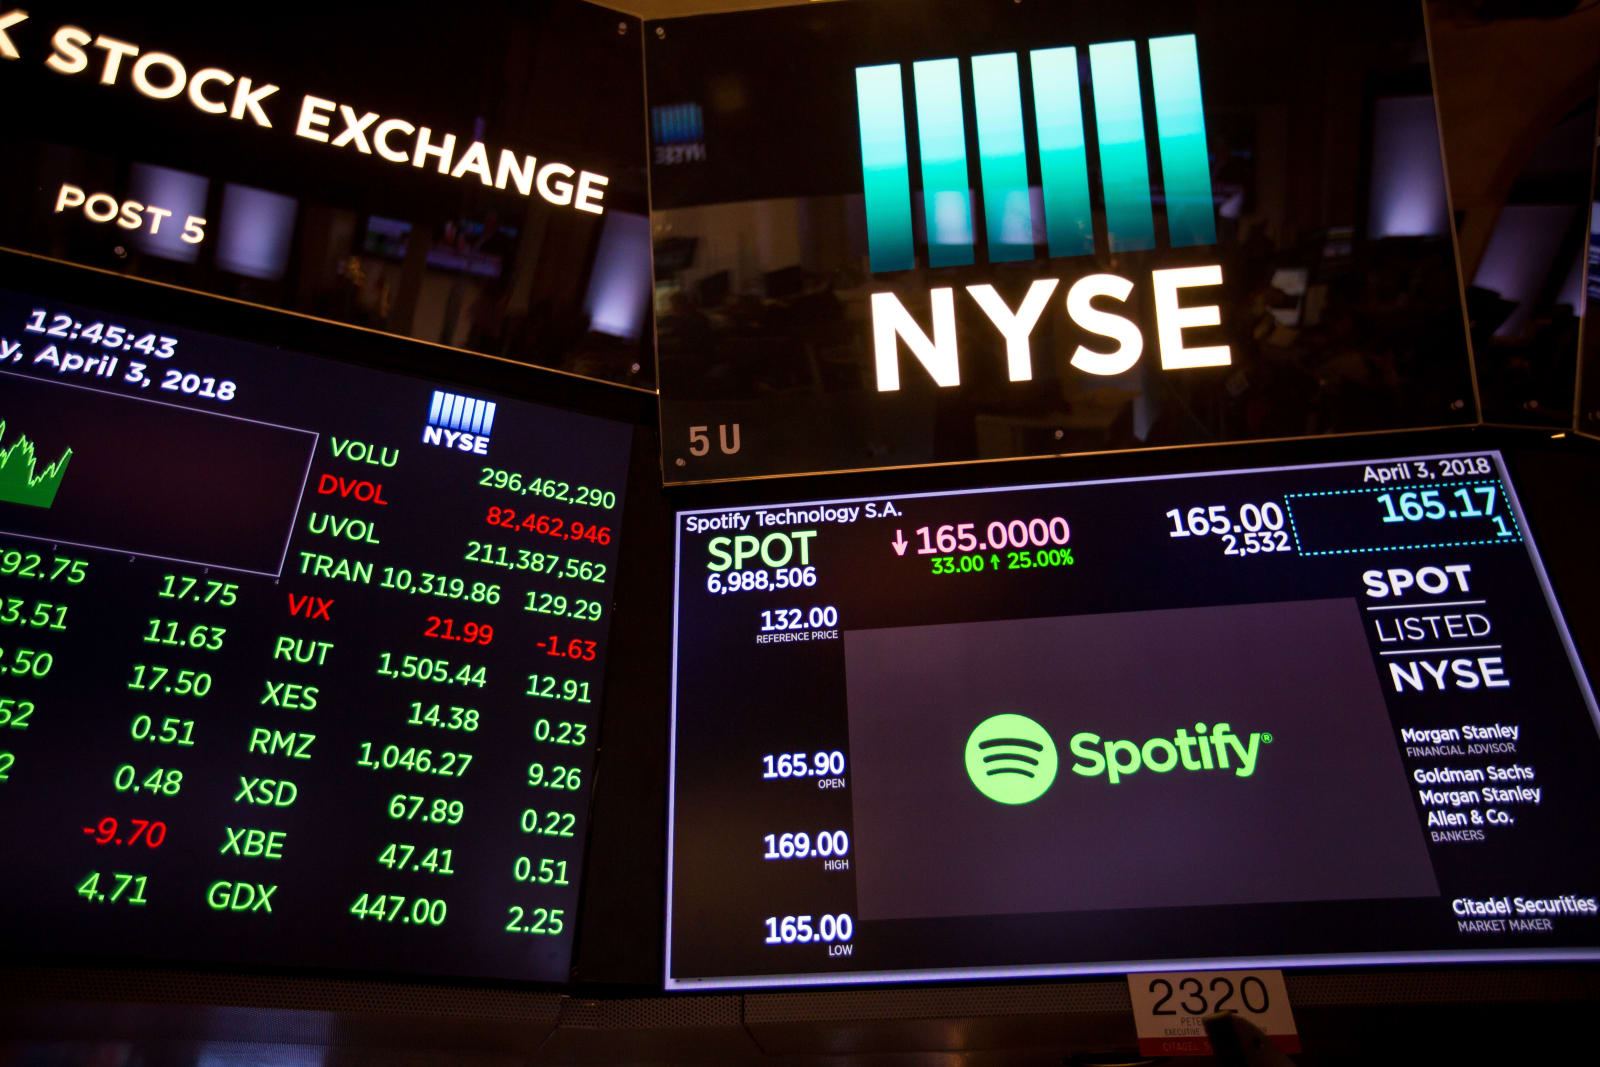 Spotify Ltd. Begins Trading At The New York Stock Exchange